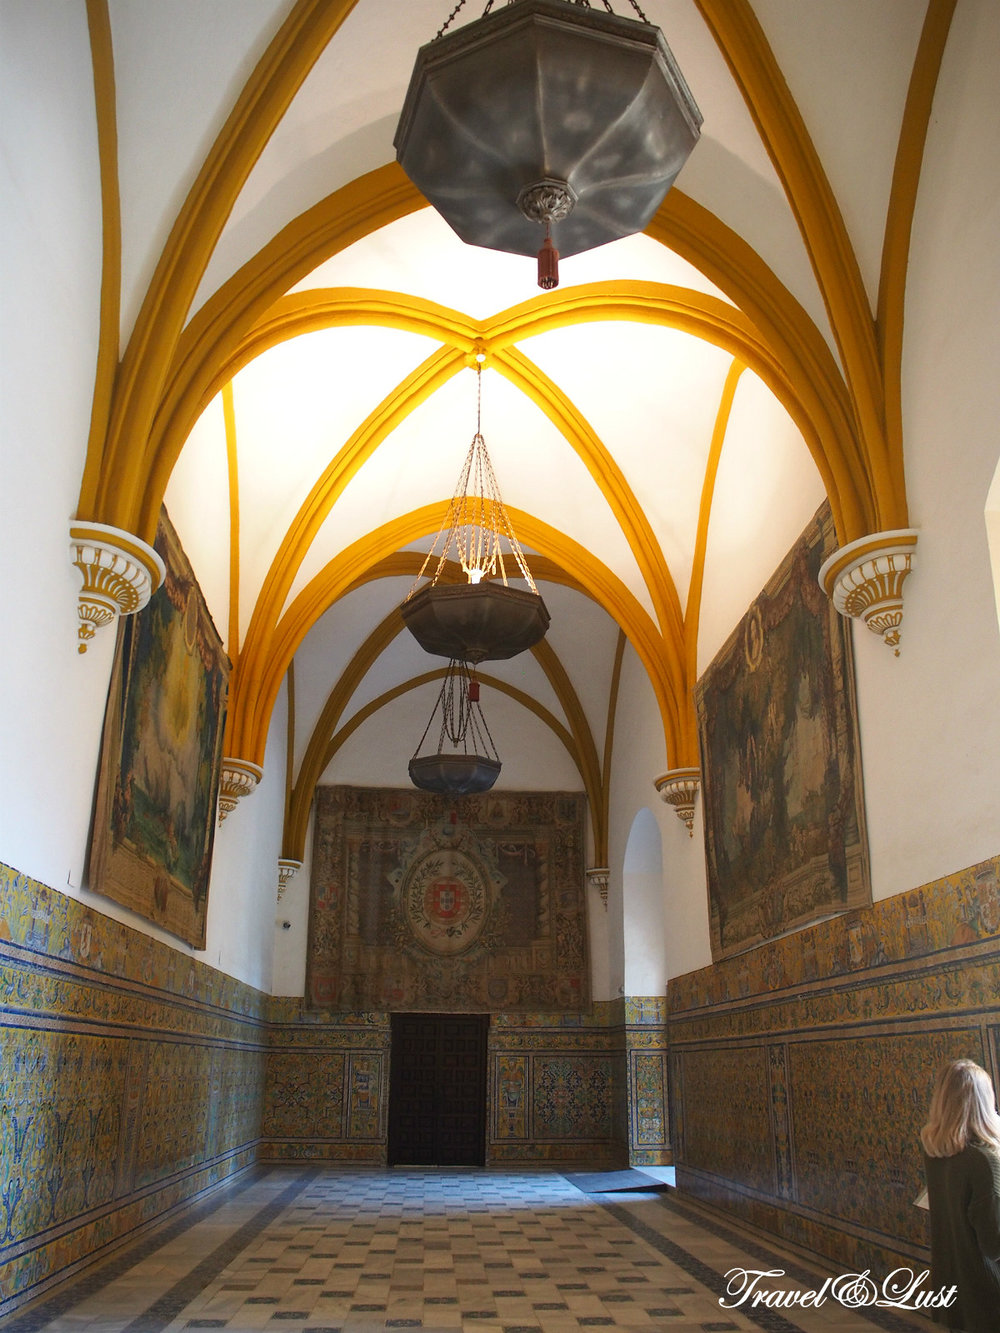 The Real Alcázar de Sevilla (The Alcazar of Seville) is divided into sections dating from a succession of eras: Moorish (11th-12th century), Gothic (13th century), Mudejar (14th century), and Renaissance (15th-16th century).